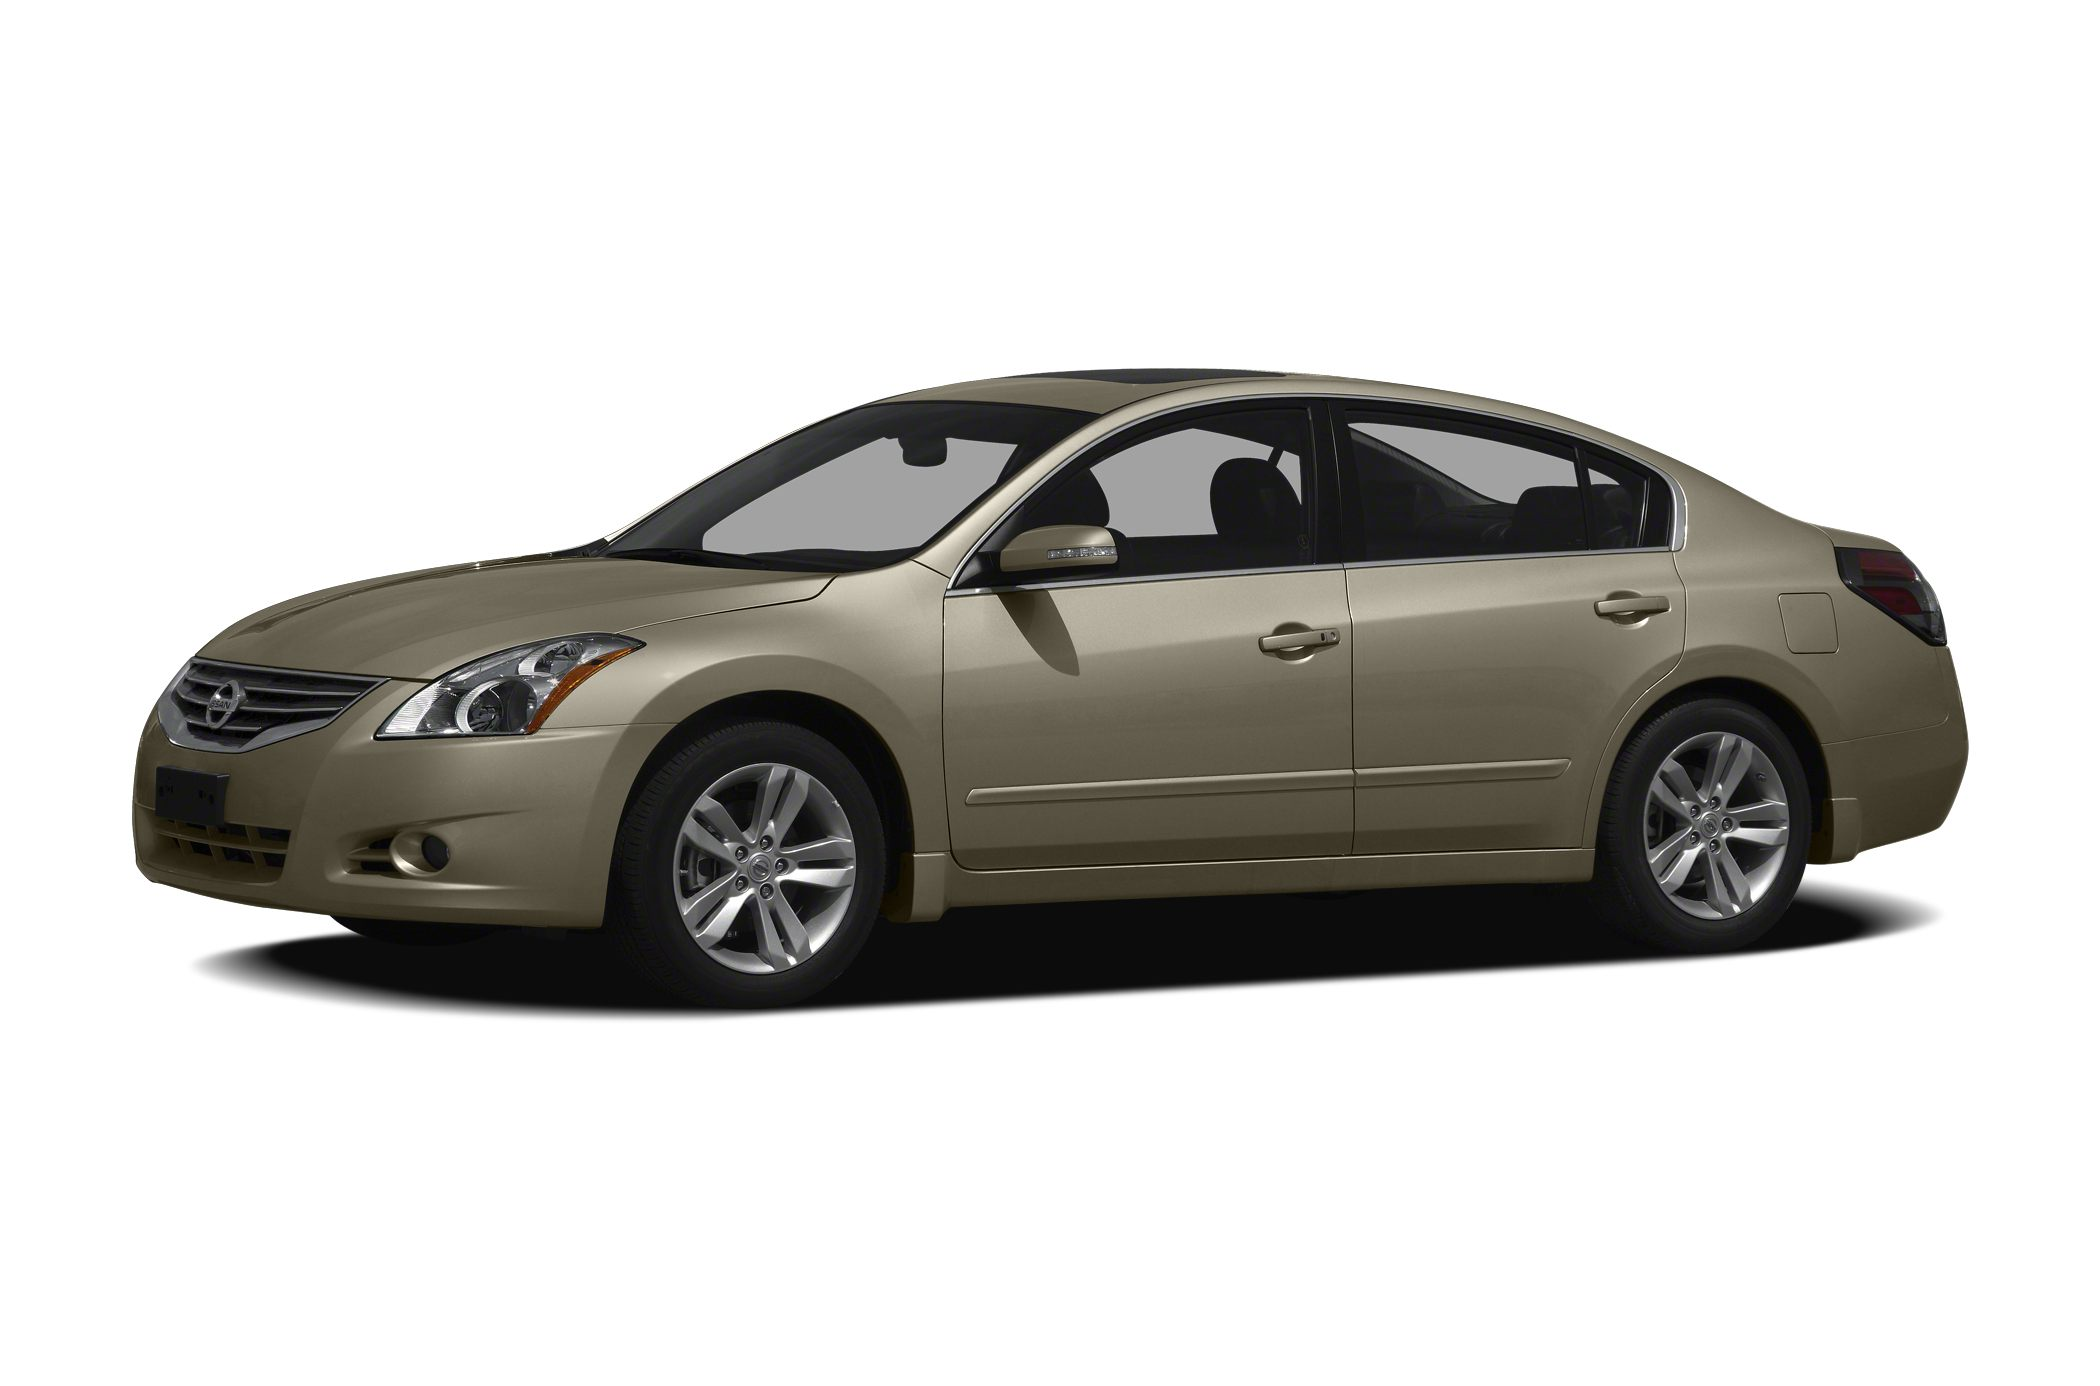 2012 Nissan Altima 2.5 S Coupe for sale in Enid for $14,500 with 71,015 miles.